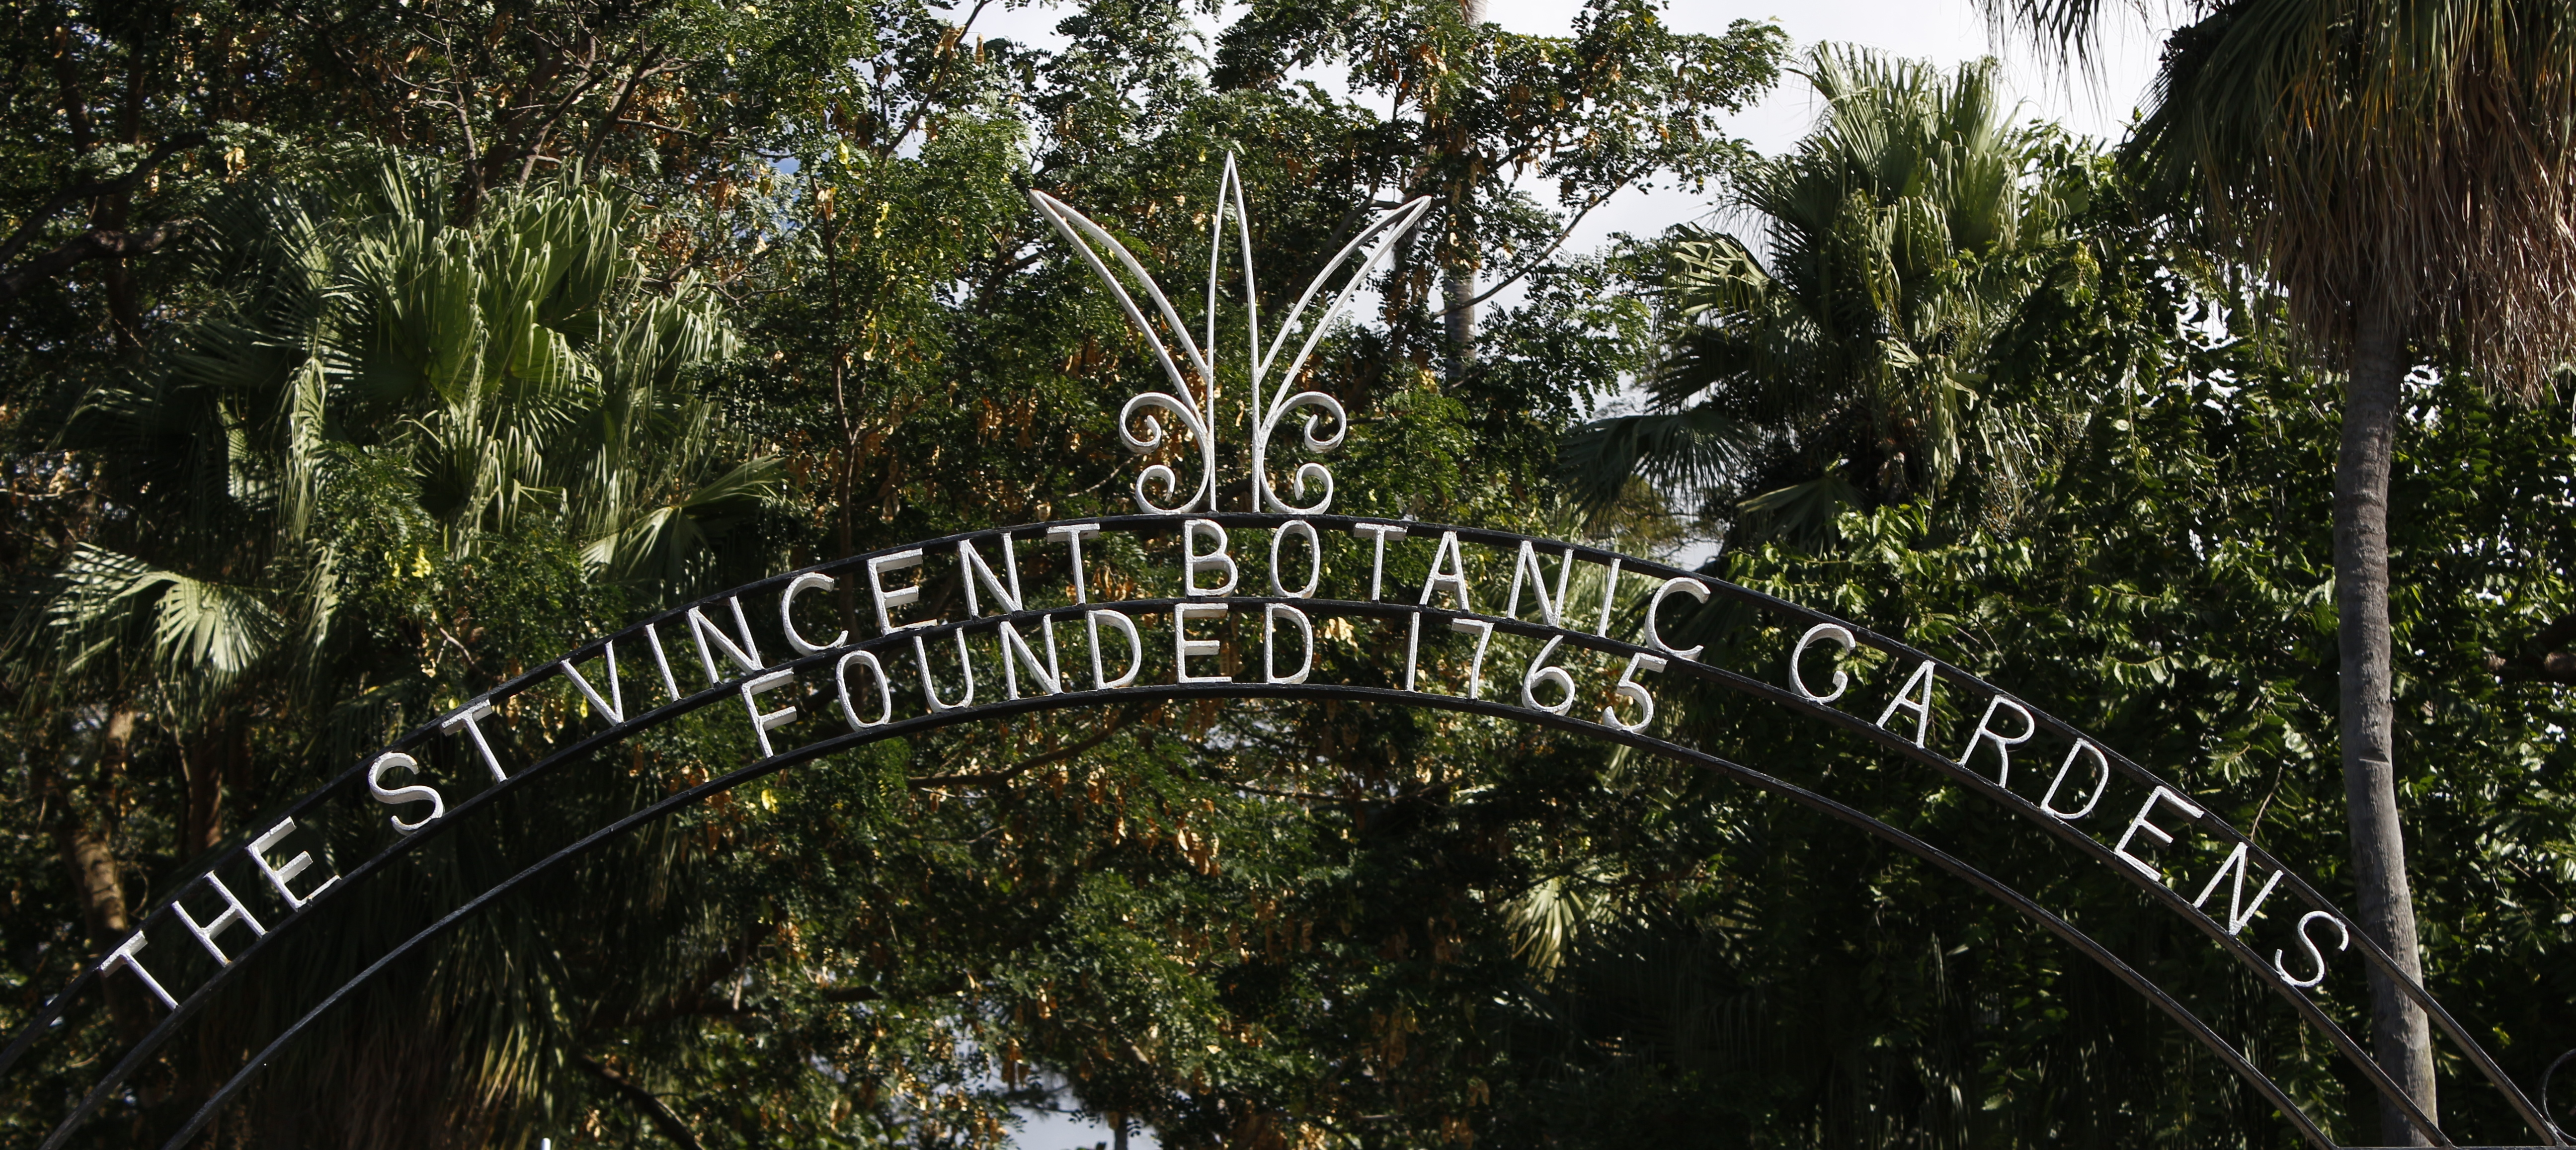 The entry to the St Vincent Botanic Garden; the oldest in the western hemisphere